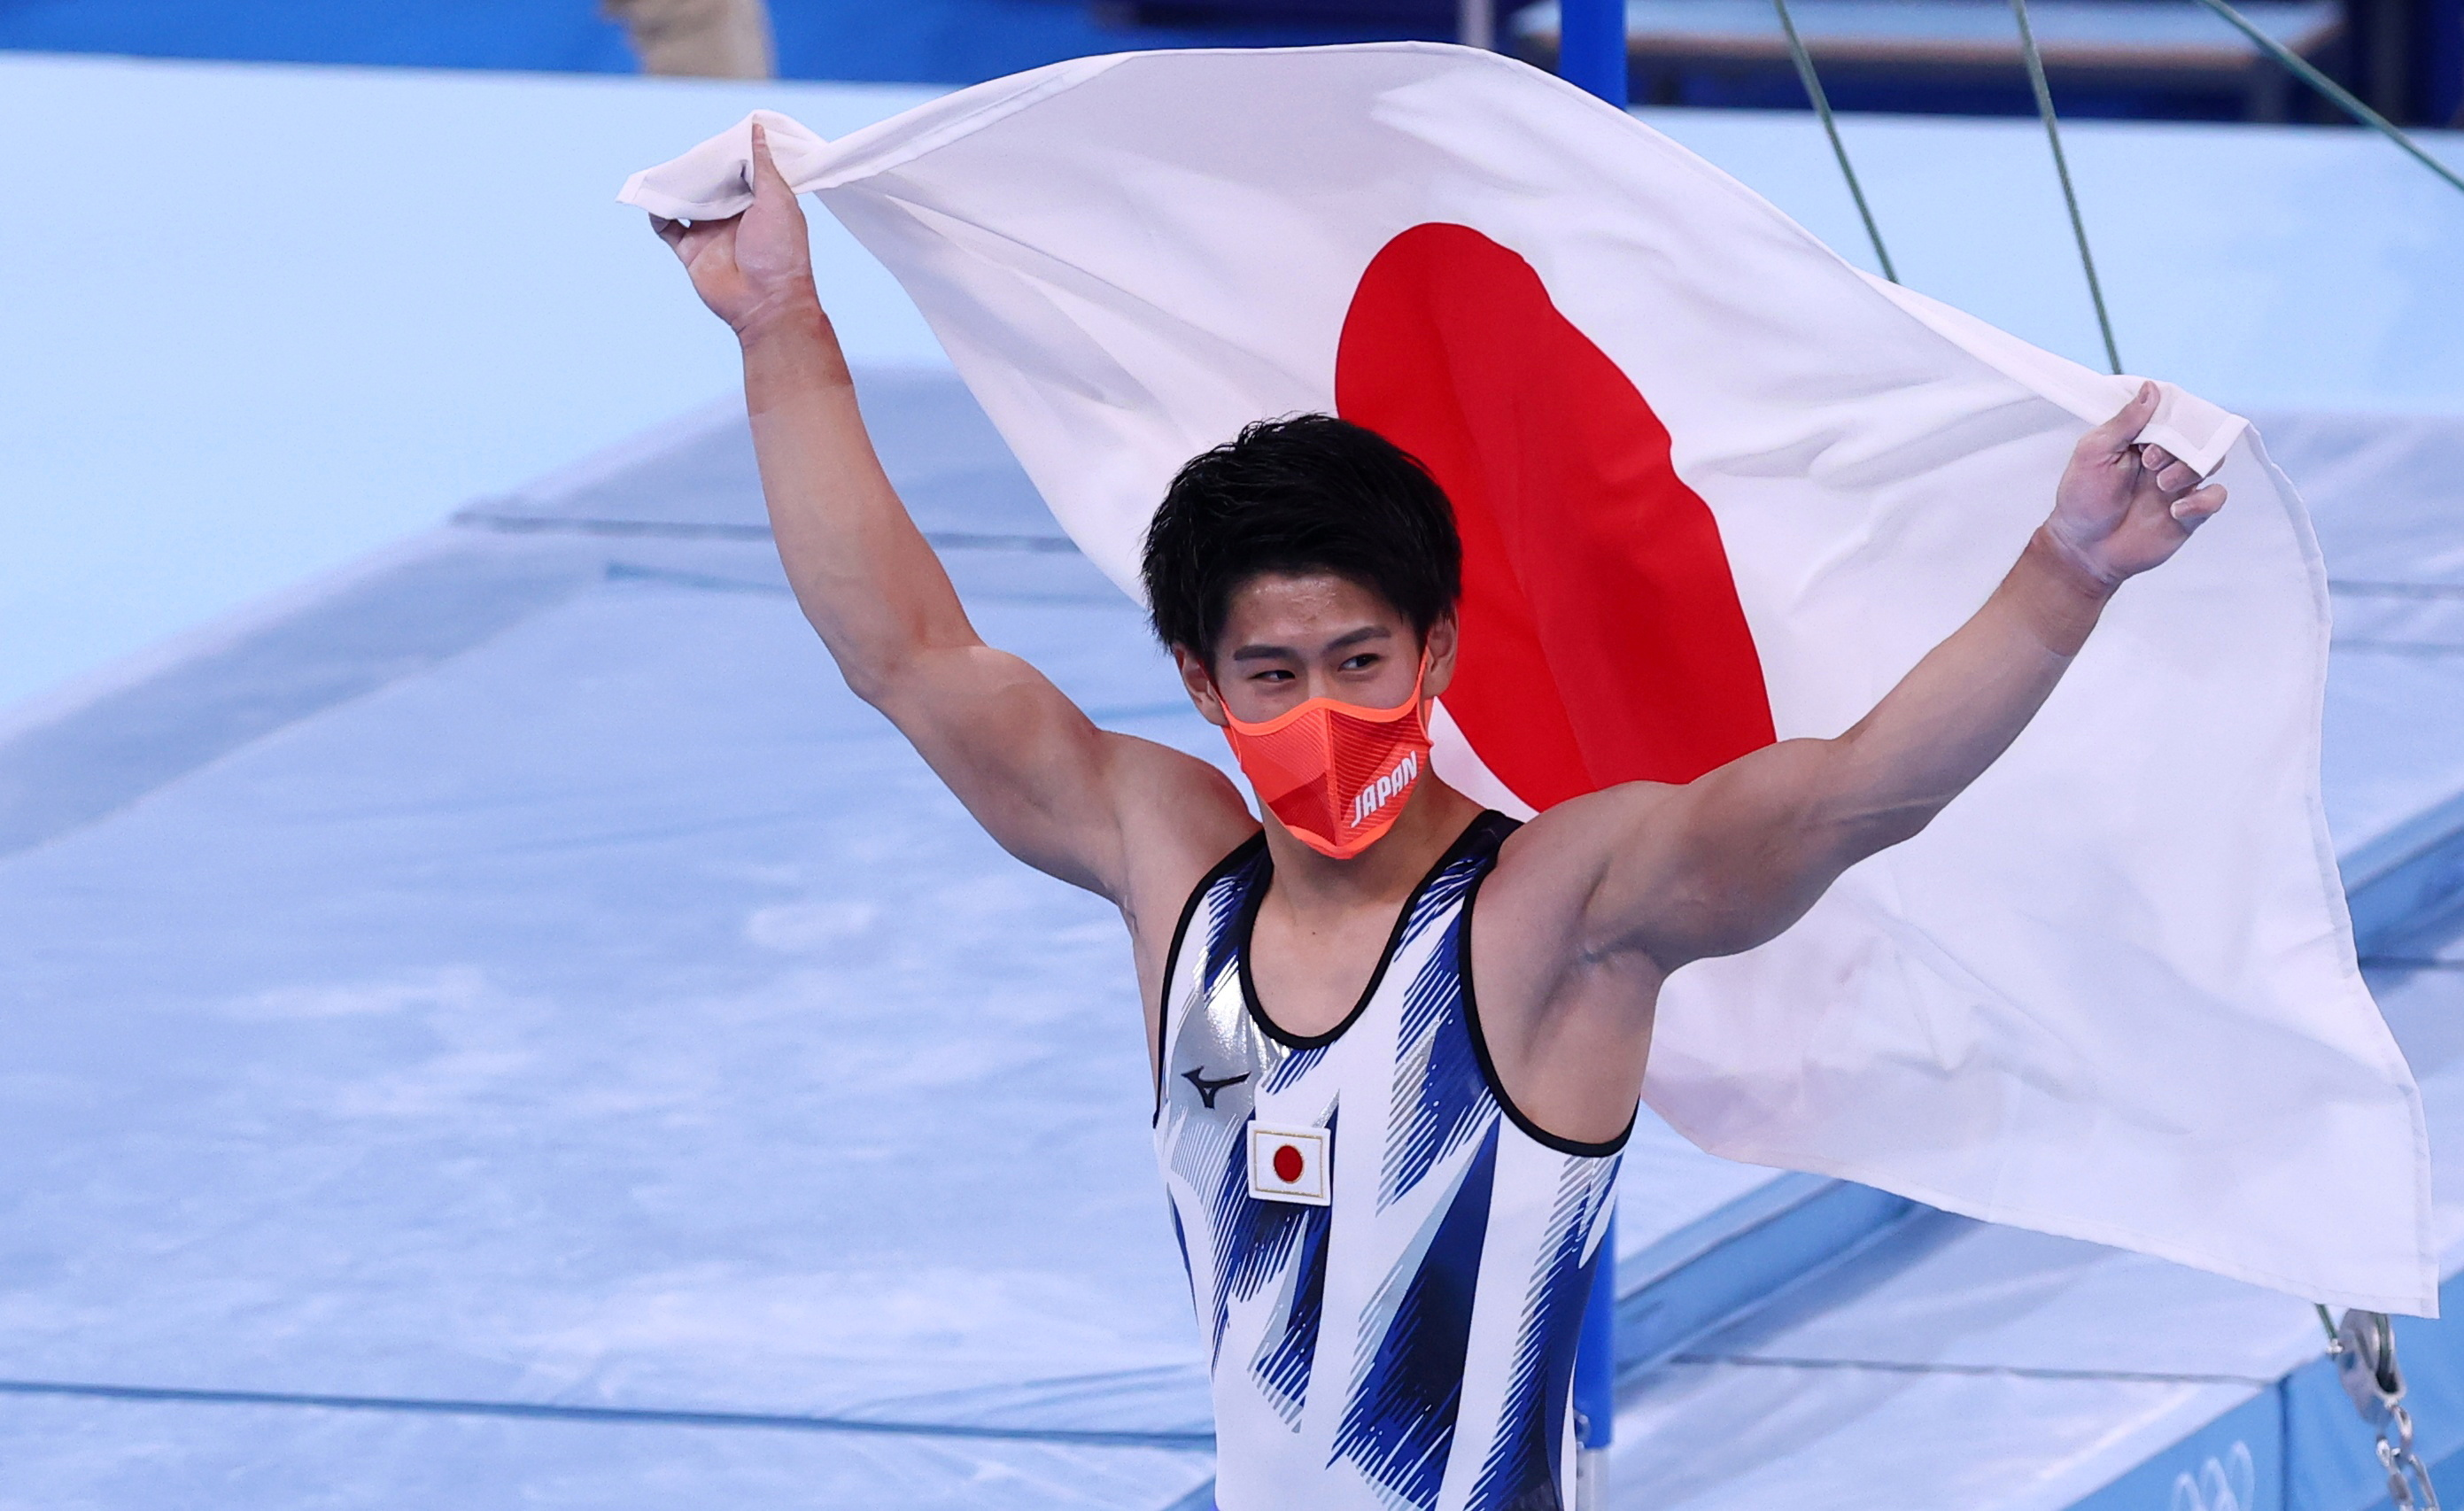 Tokyo 2020 Olympics - Gymnastics - Artistic - Men's Individual All-Around - Final - Ariake Gymnastics Centre, Tokyo, Japan - July 28, 2021. Daiki Hashimoto of Japan celebrates after winning the gold medal. REUTERS/Mike Blake     TPX IMAGES OF THE DAY